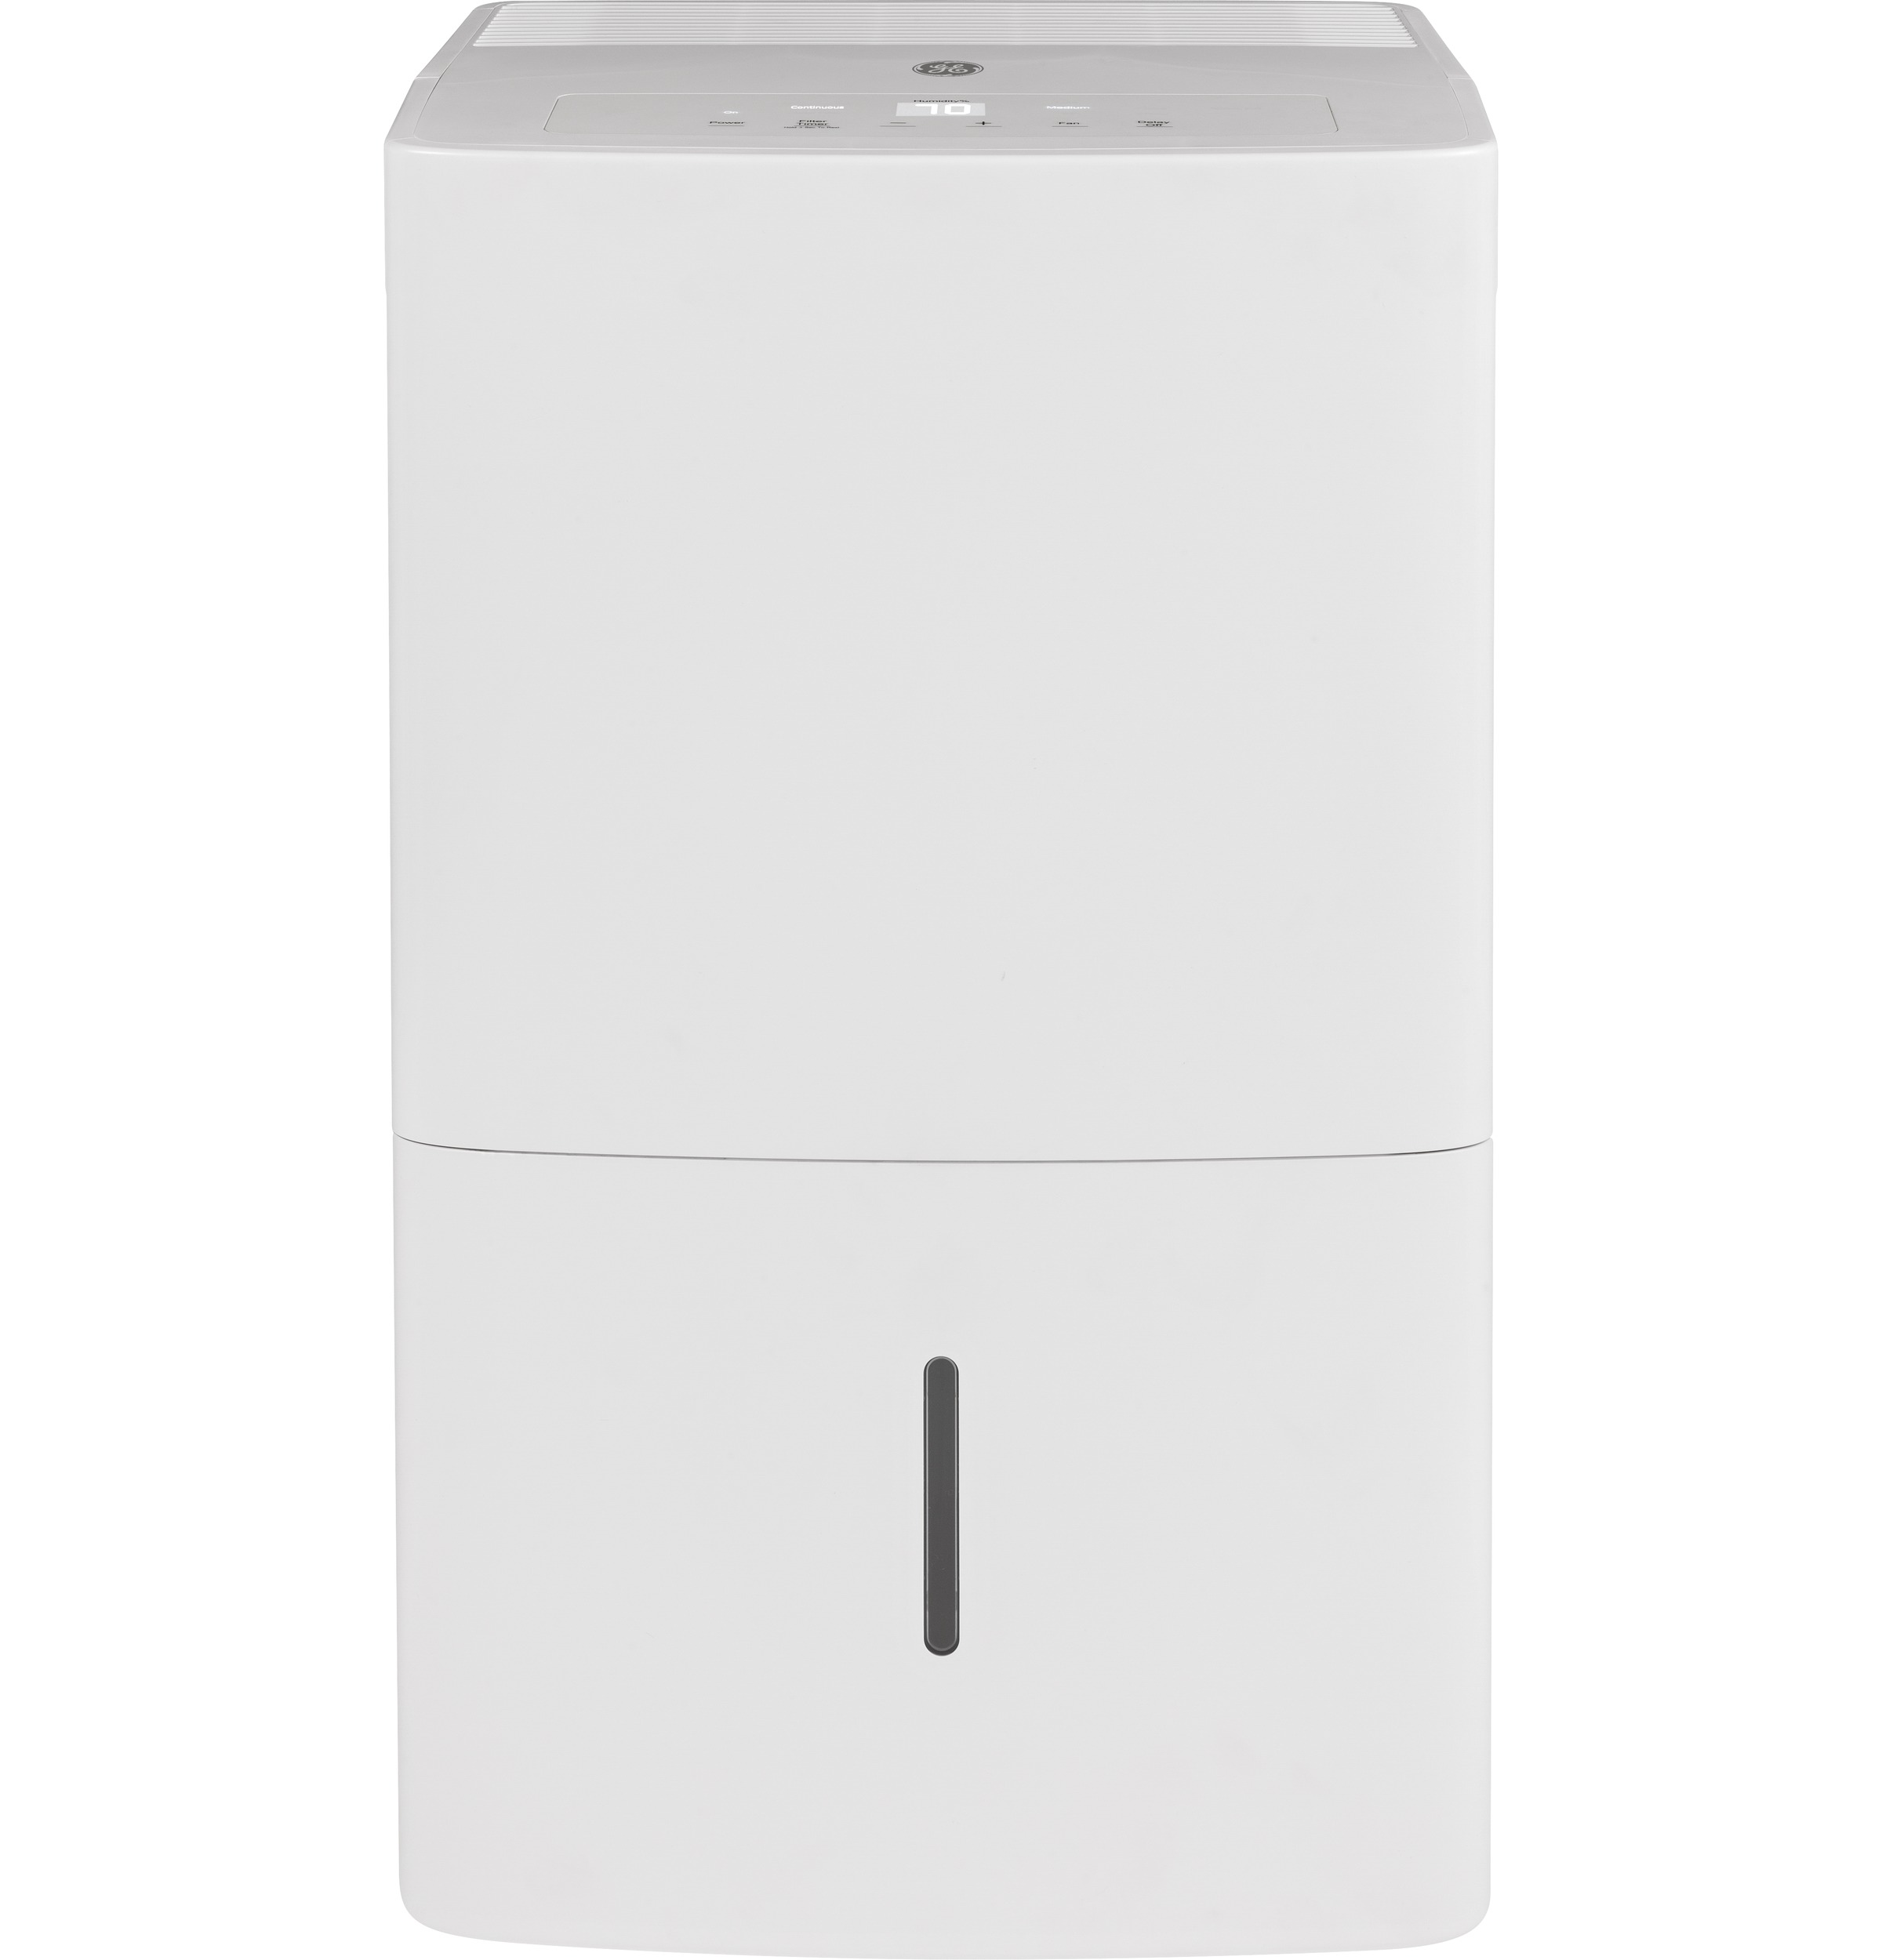 GE® Dehumidifier with Built-in Pump | APEH70LW | GE Appliances on